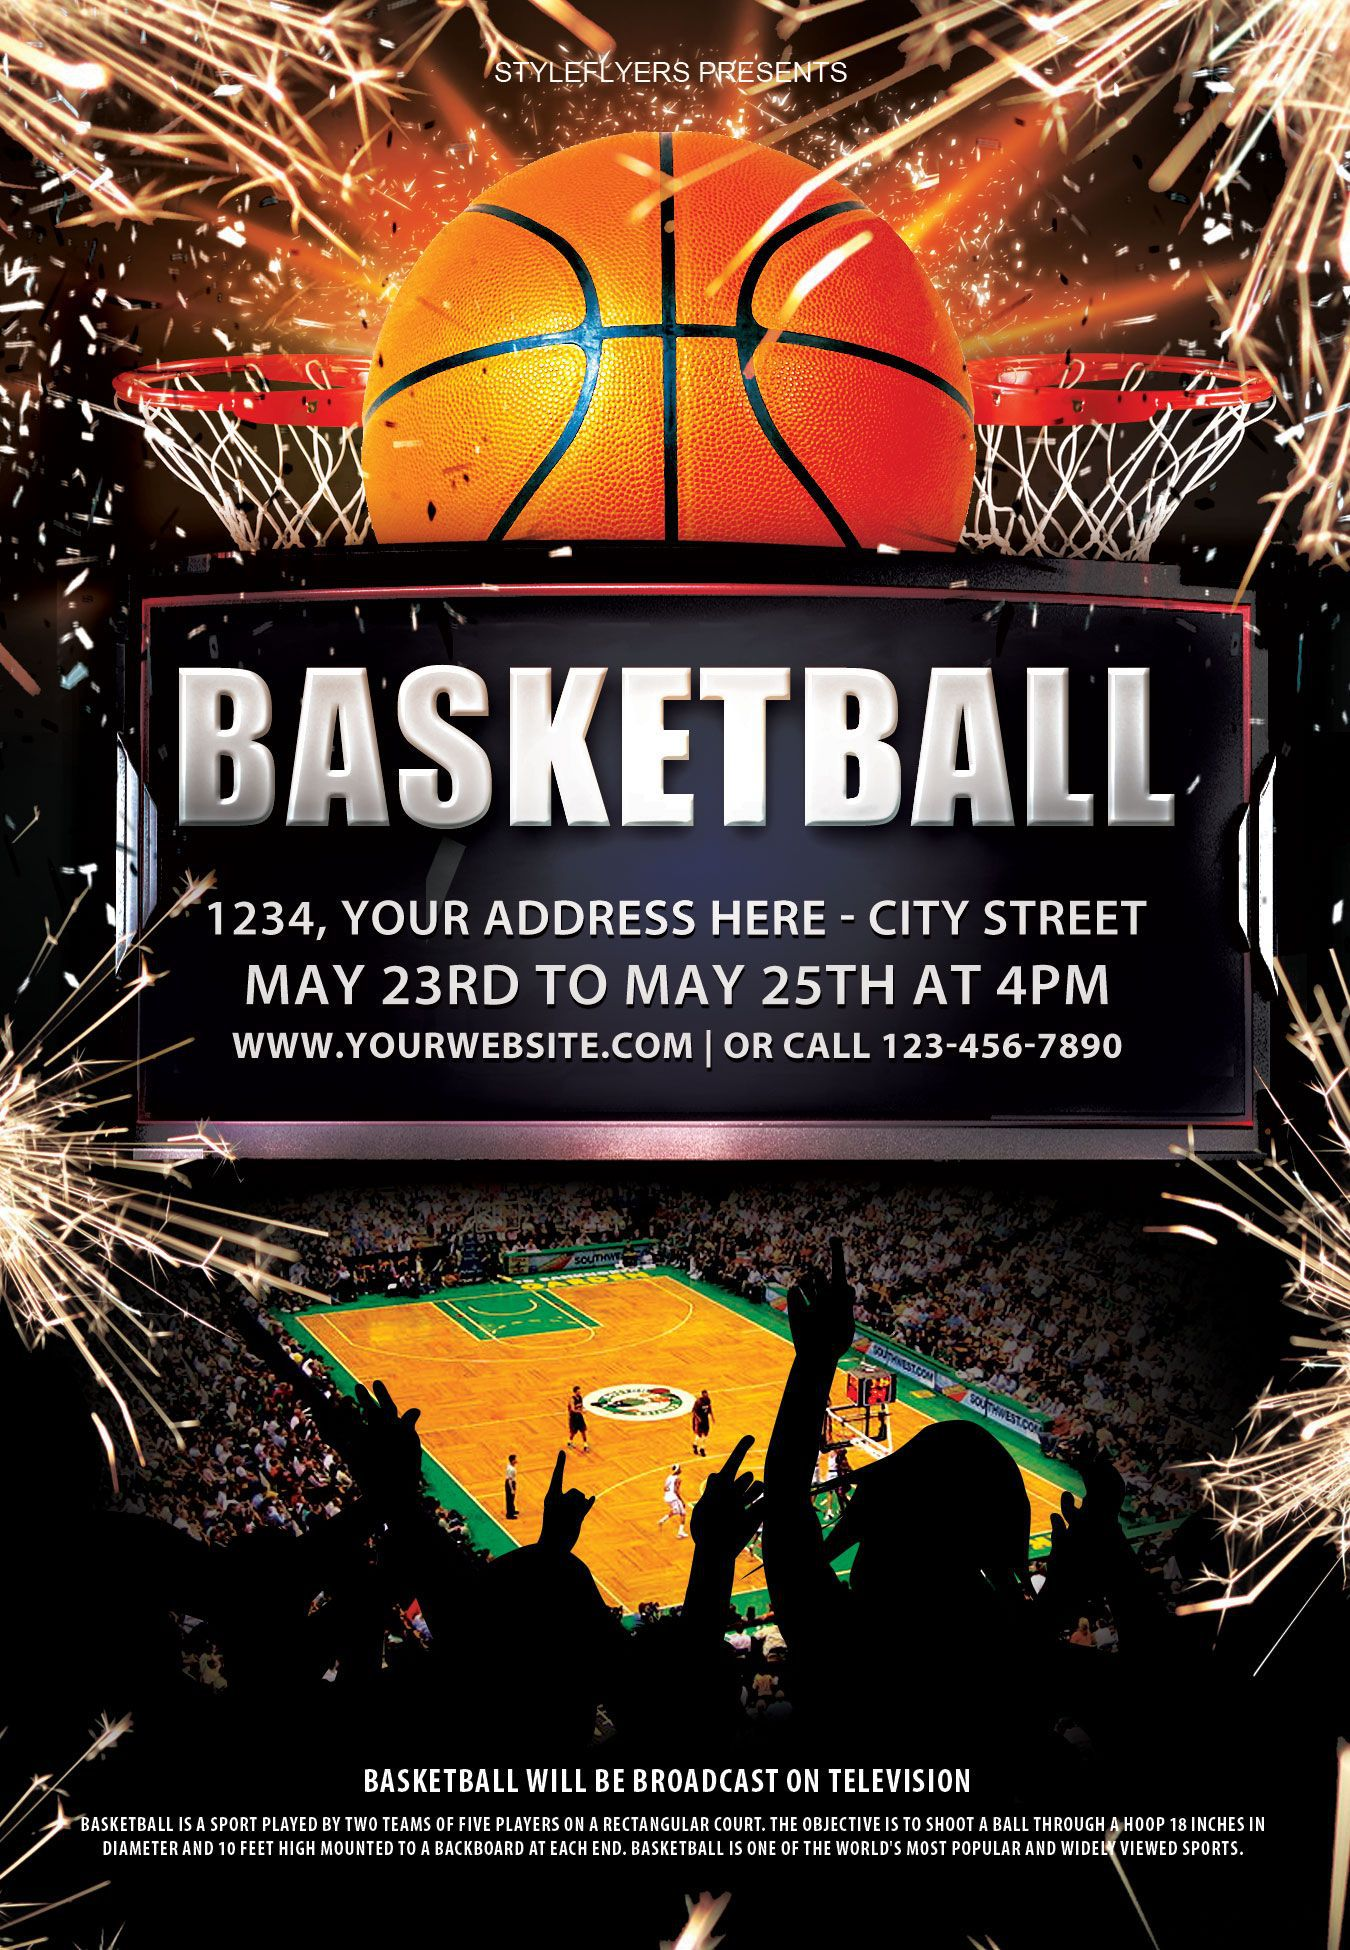 003 Beautiful Basketball Flyer Template Free Photo  Brochure Tryout CampFull